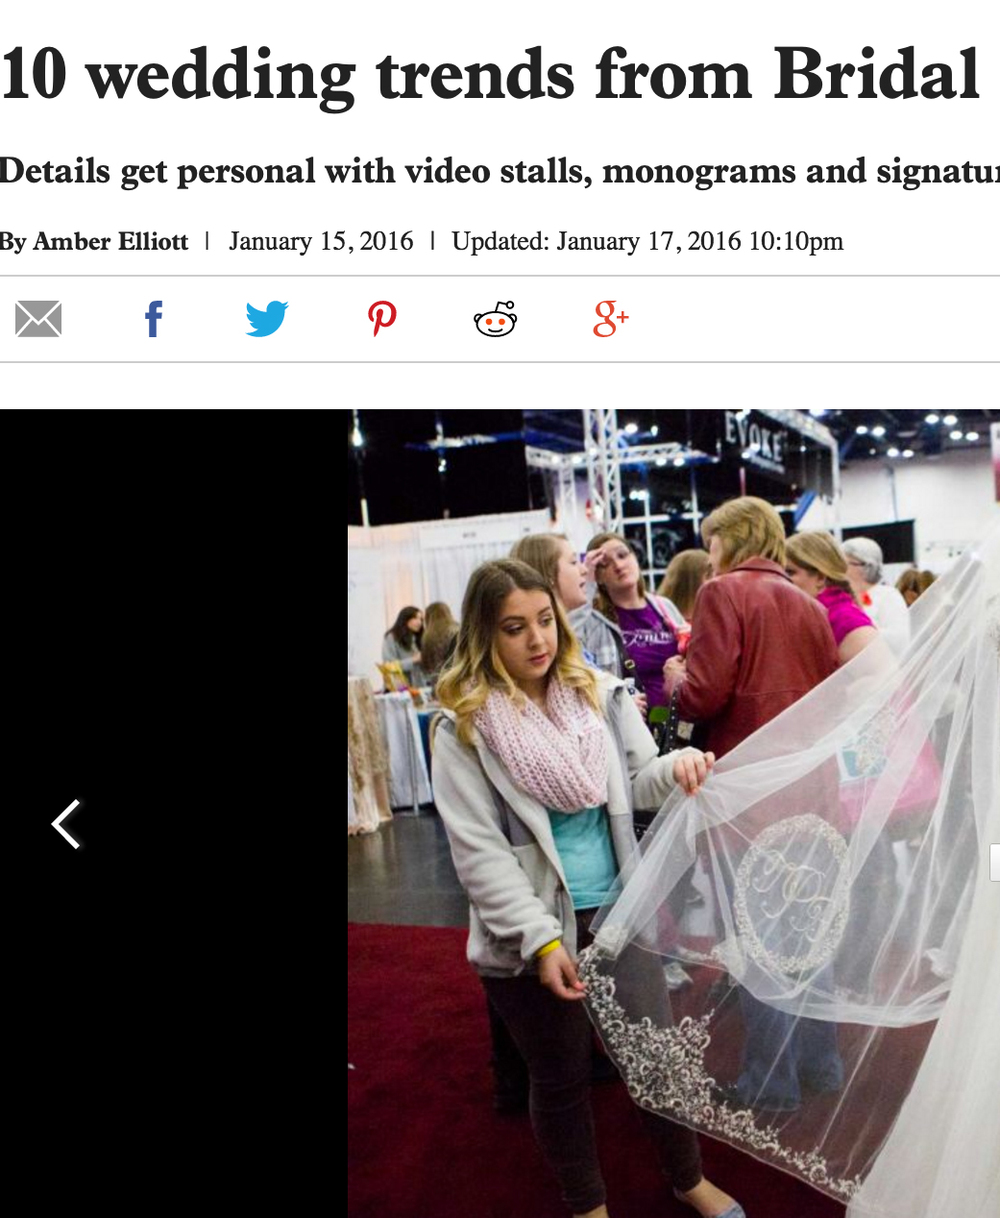 10 Wedding Trends from The Bridal Extravaganza Show - Houston Chronicles